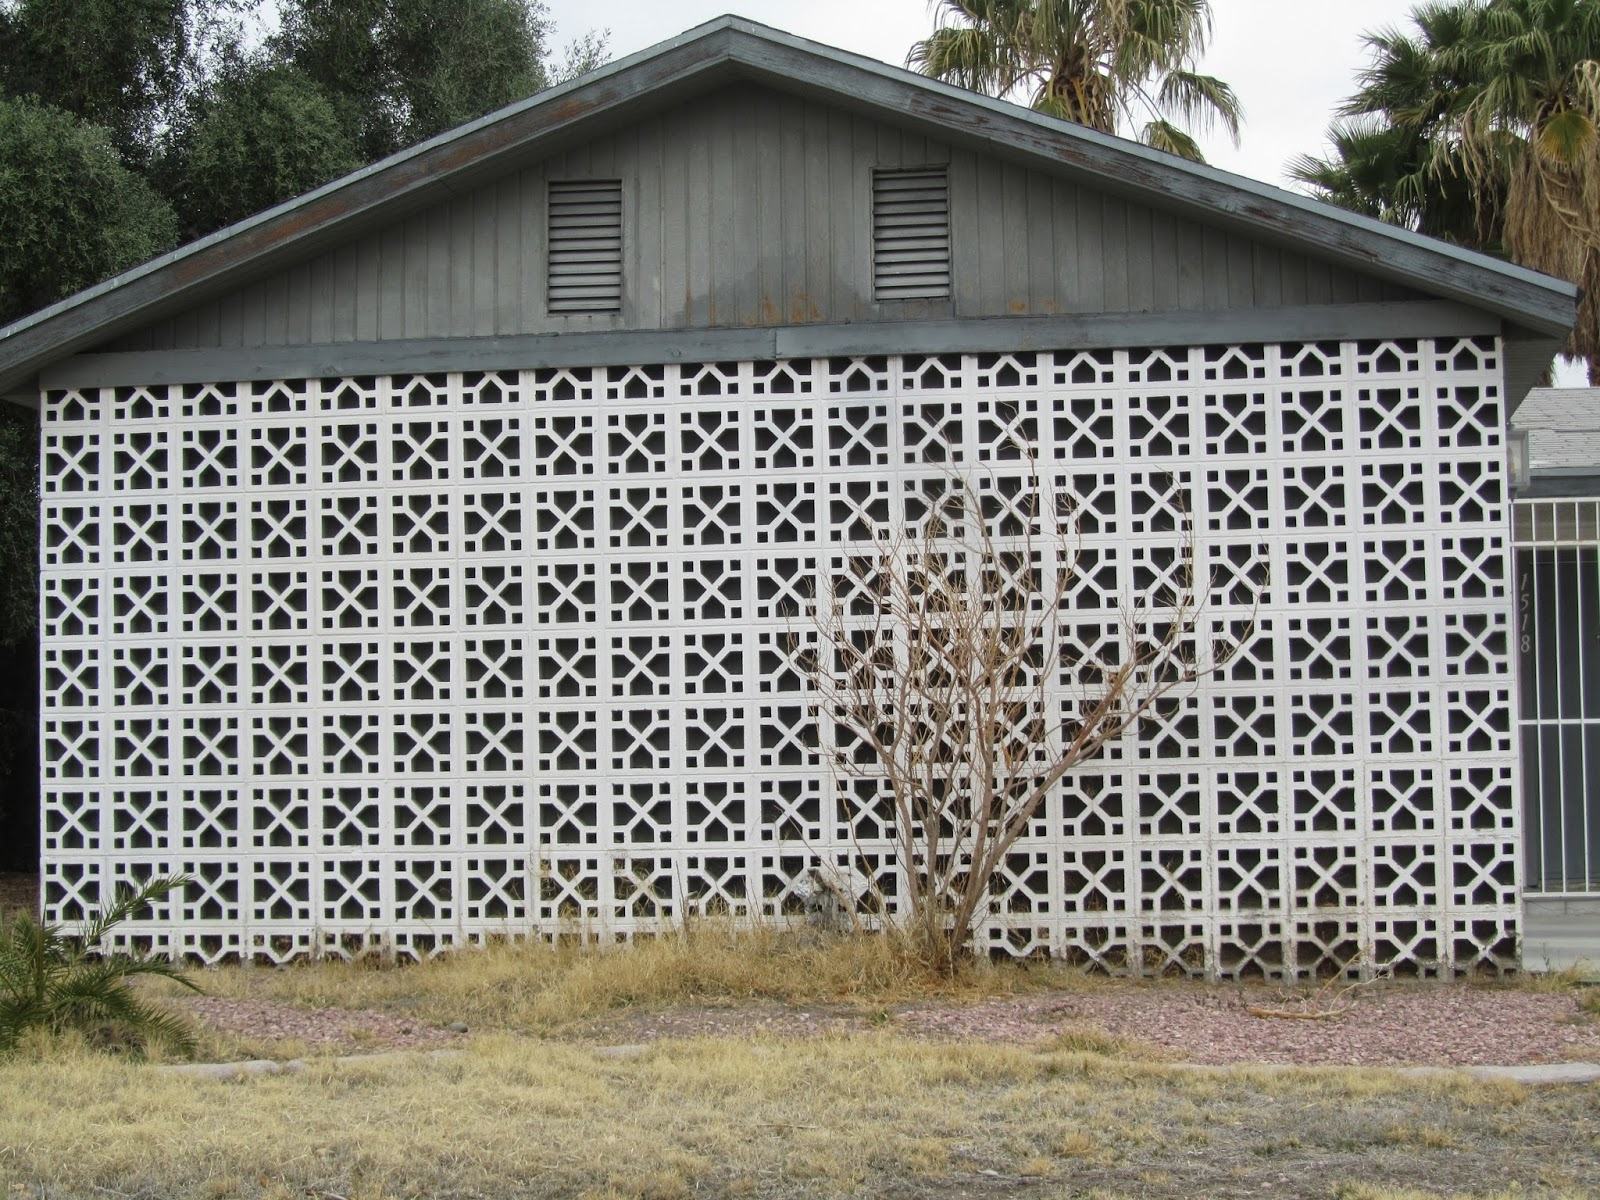 Architectural Screen Blocks : Paradise palms the architecture of